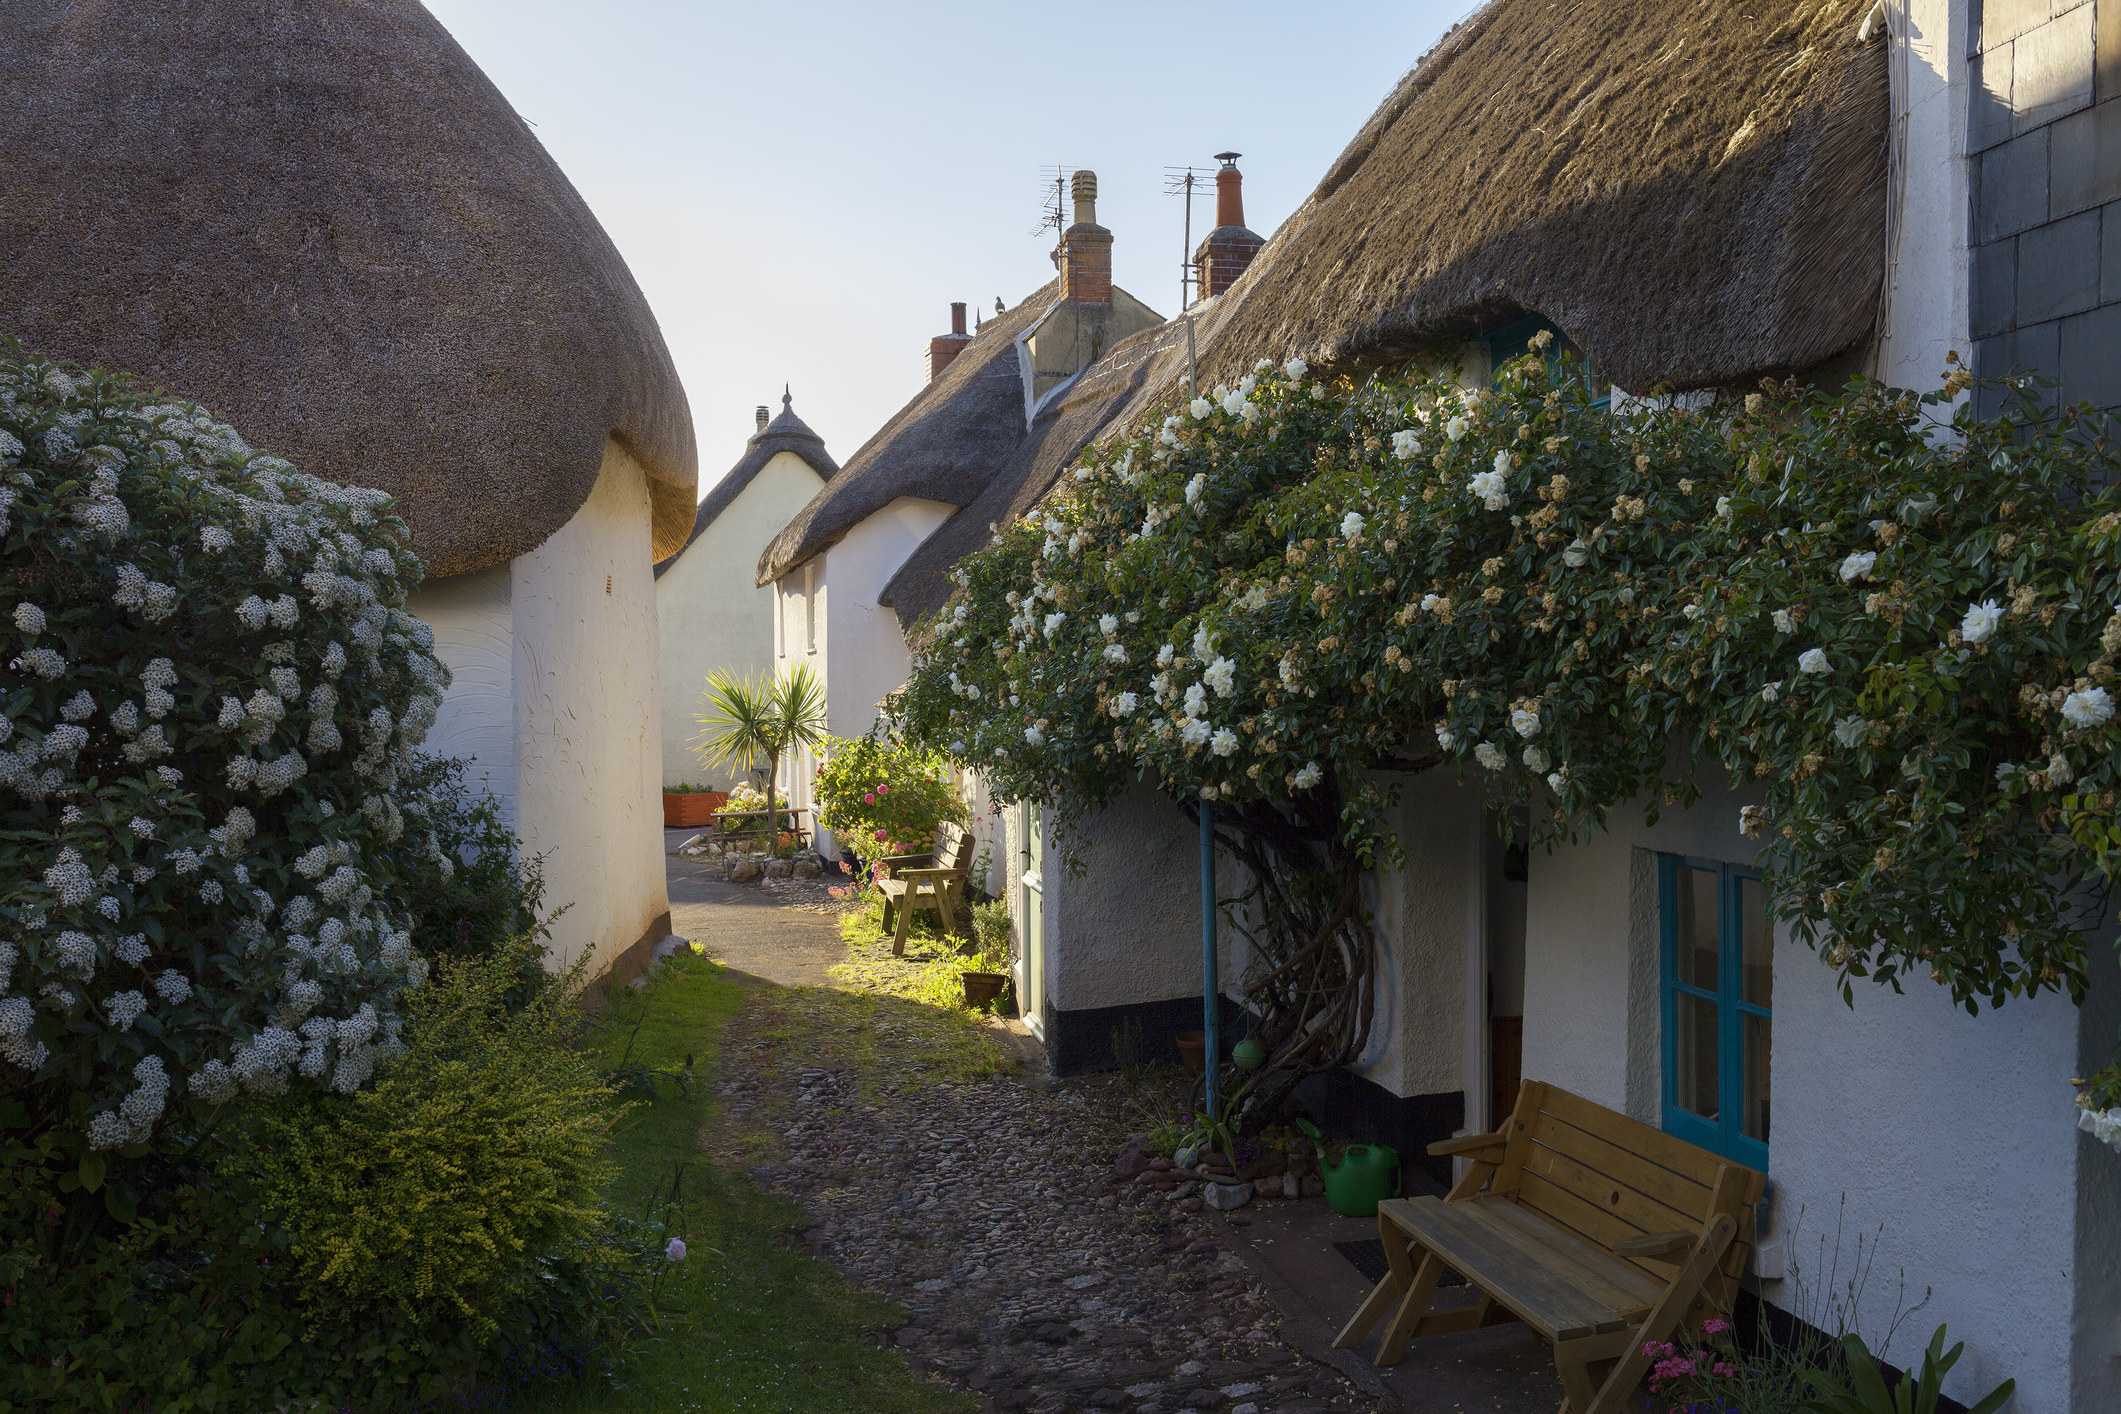 A group of cottages with thatched roofs in Hope Cove, Devon